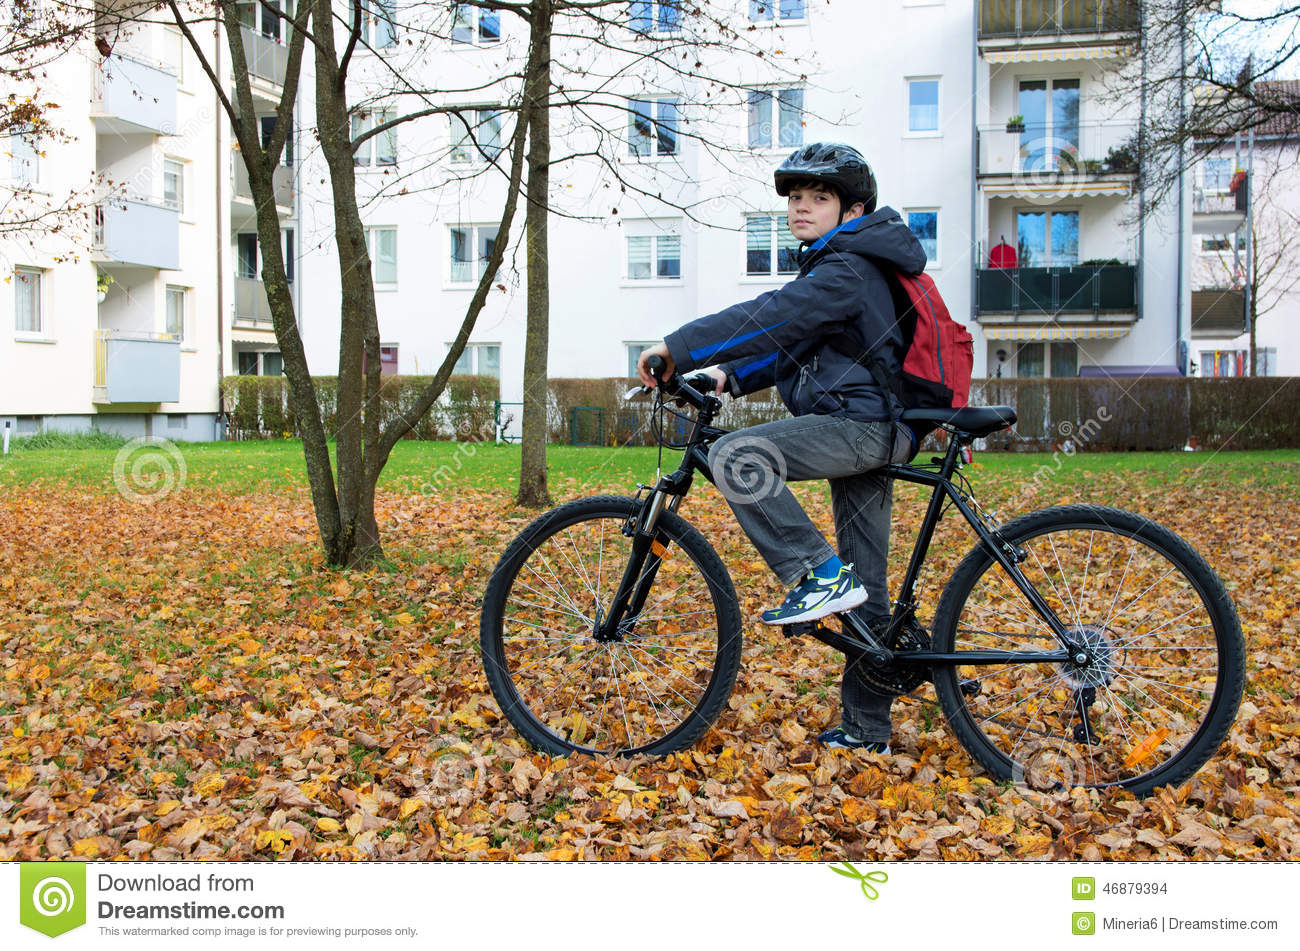 going to school by bicycle essay New school year essay flying into a new school year dear friends, this time of year everyone is writing articles on how to get the children ready to go back to school.